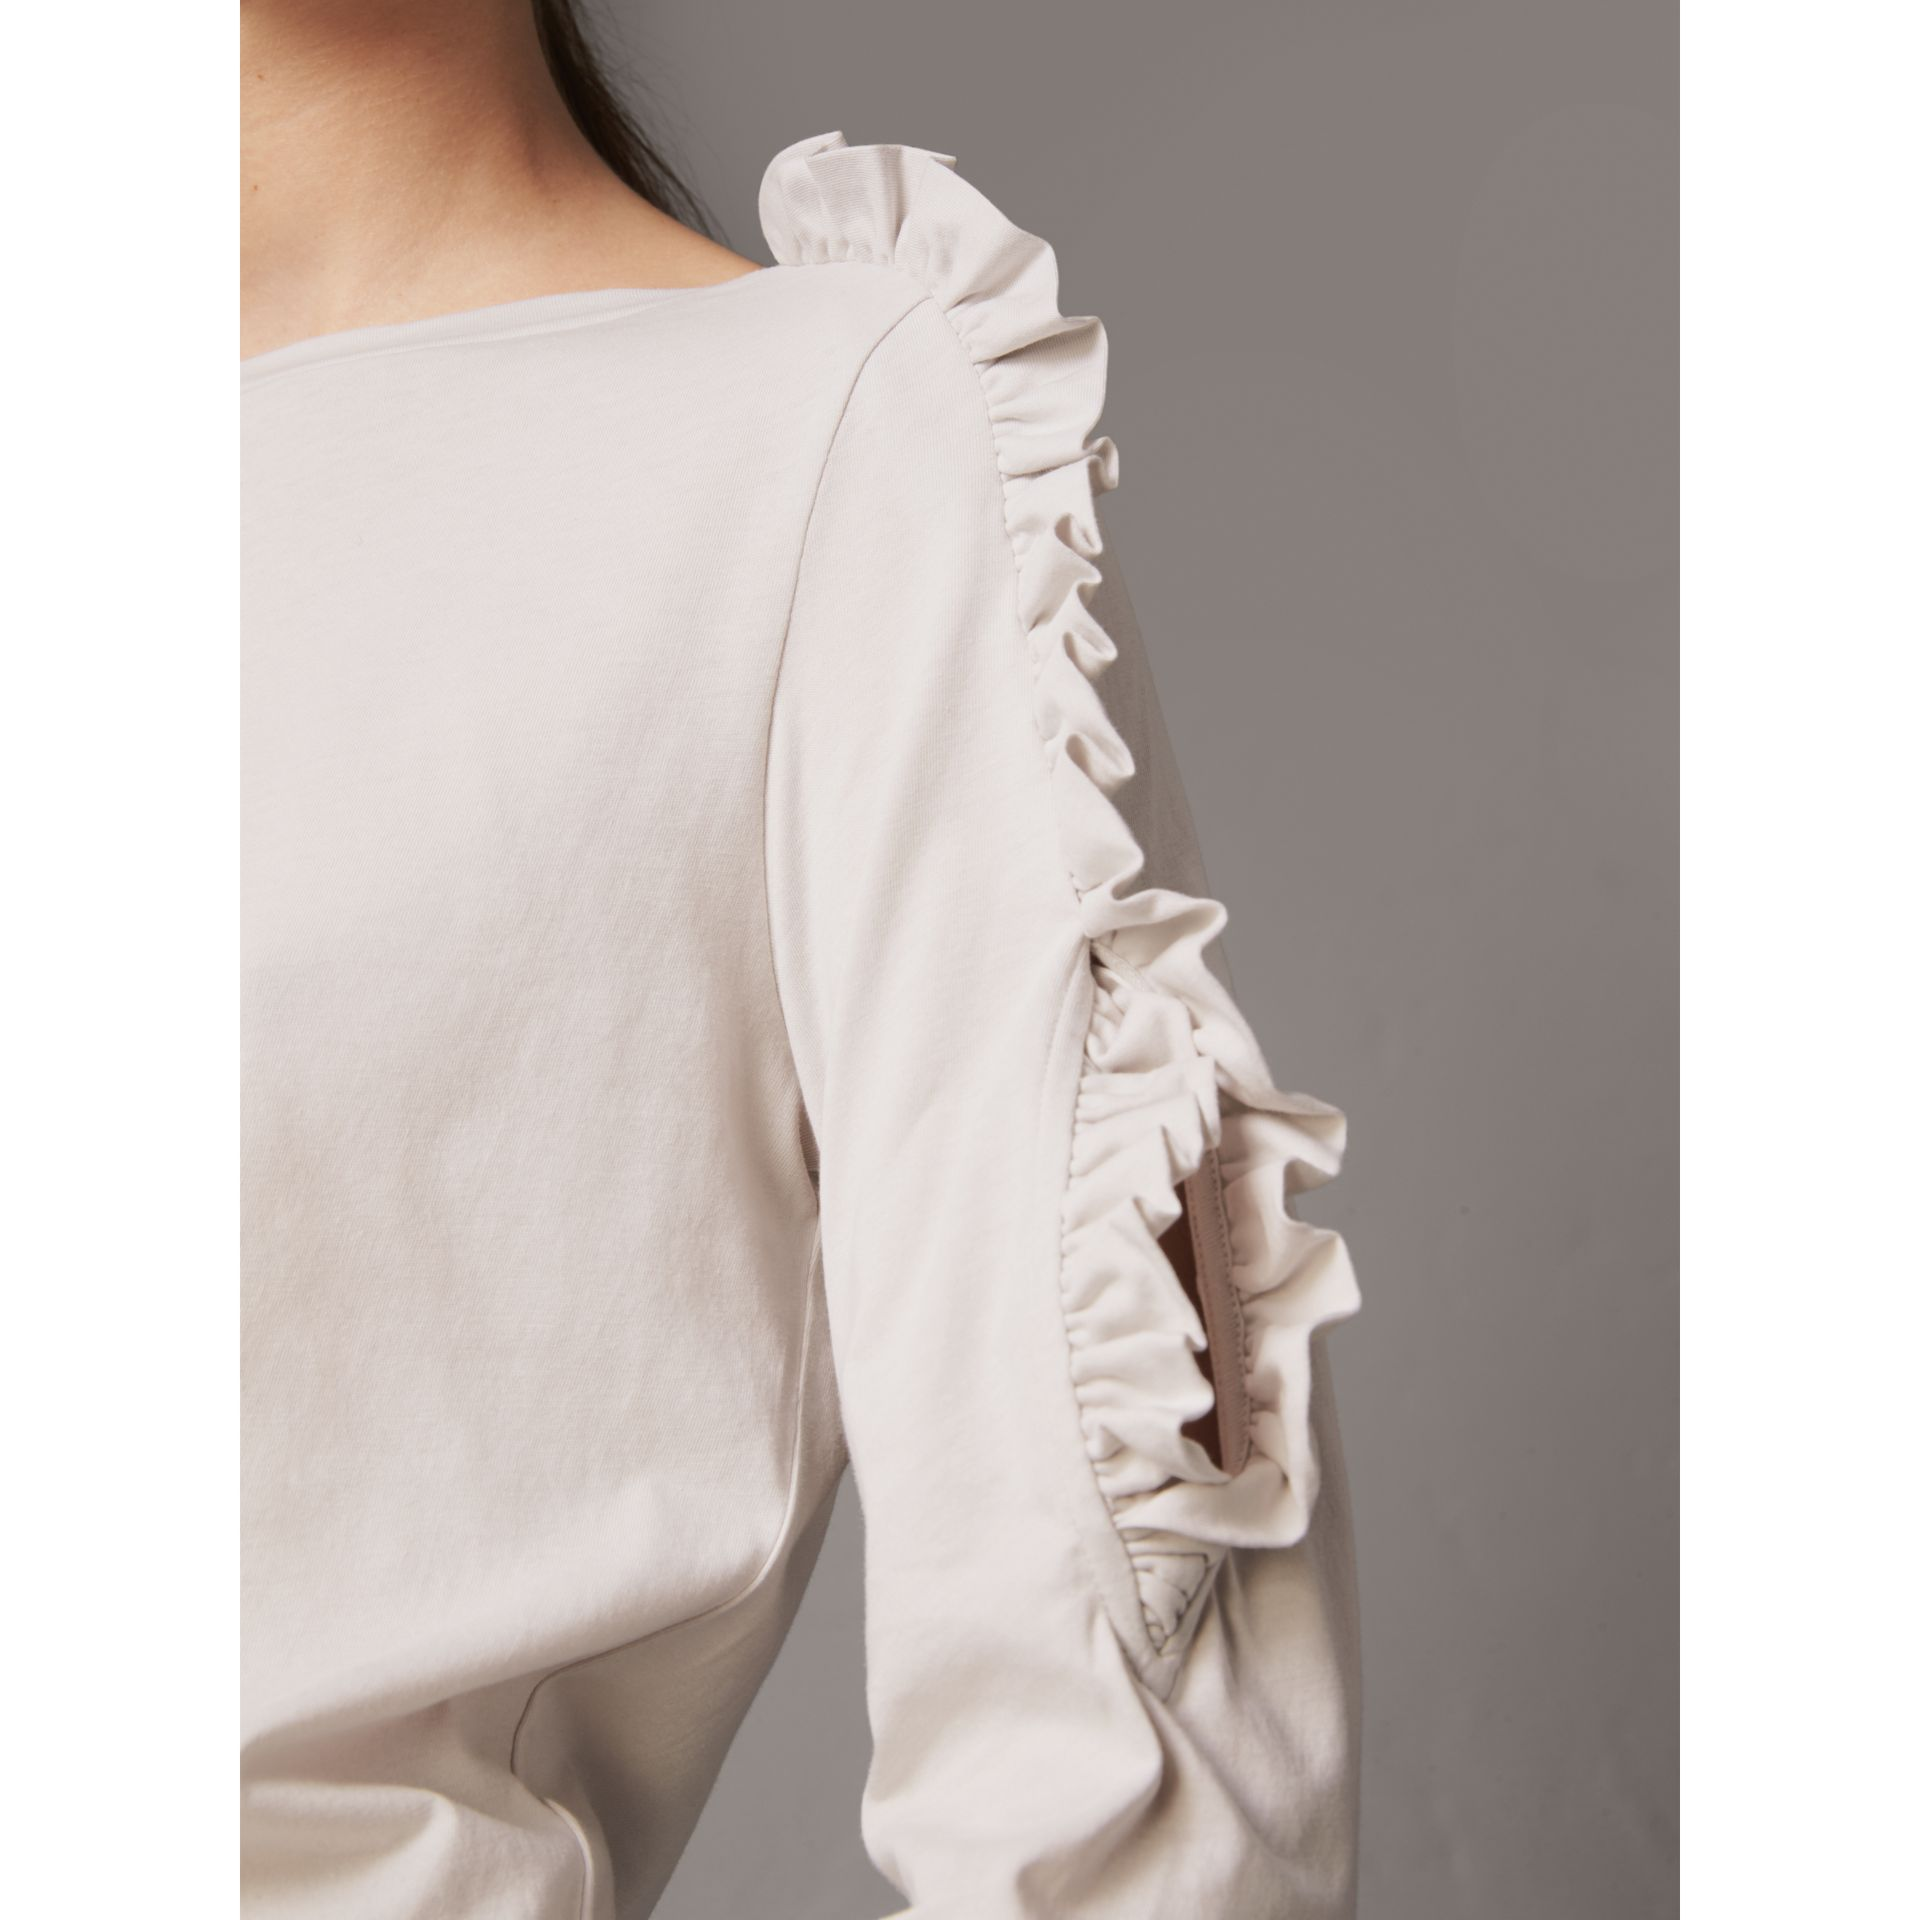 Ruffle Detail Cotton Top in Winter White - Women | Burberry - gallery image 2